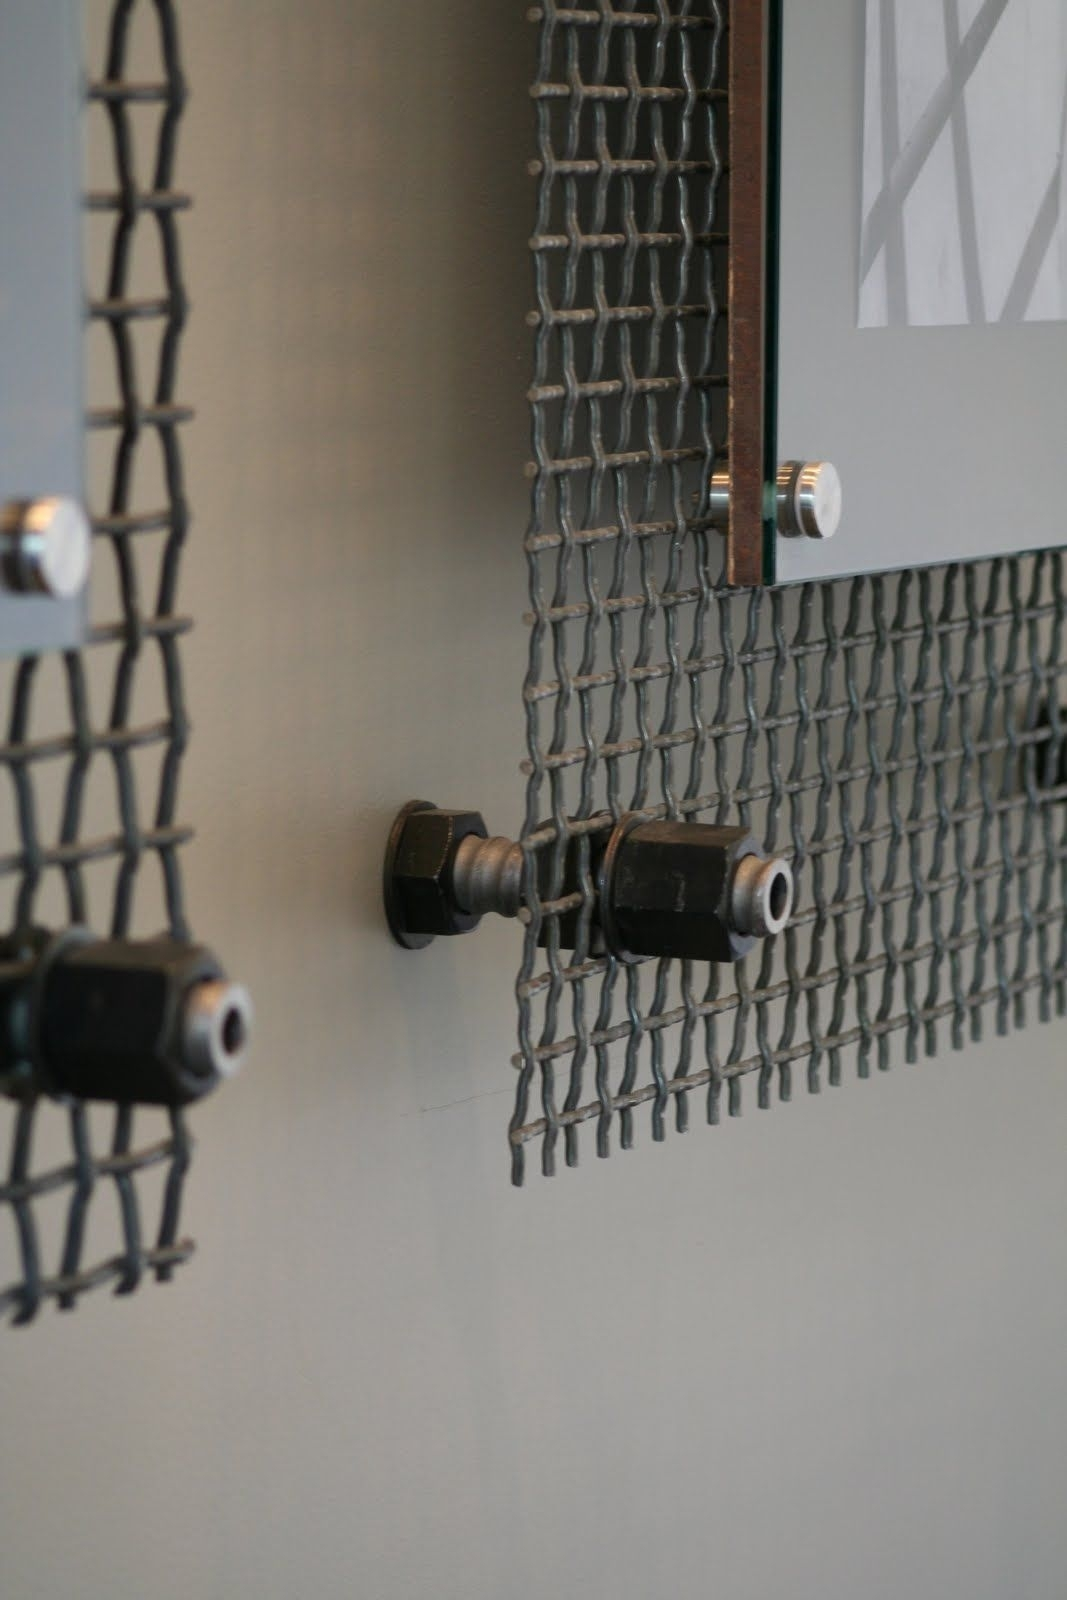 Wall Art Frame Detail Looks Like Sheet Metal, Aluminum, Industrial inside Industrial Wall Art (Image 18 of 20)